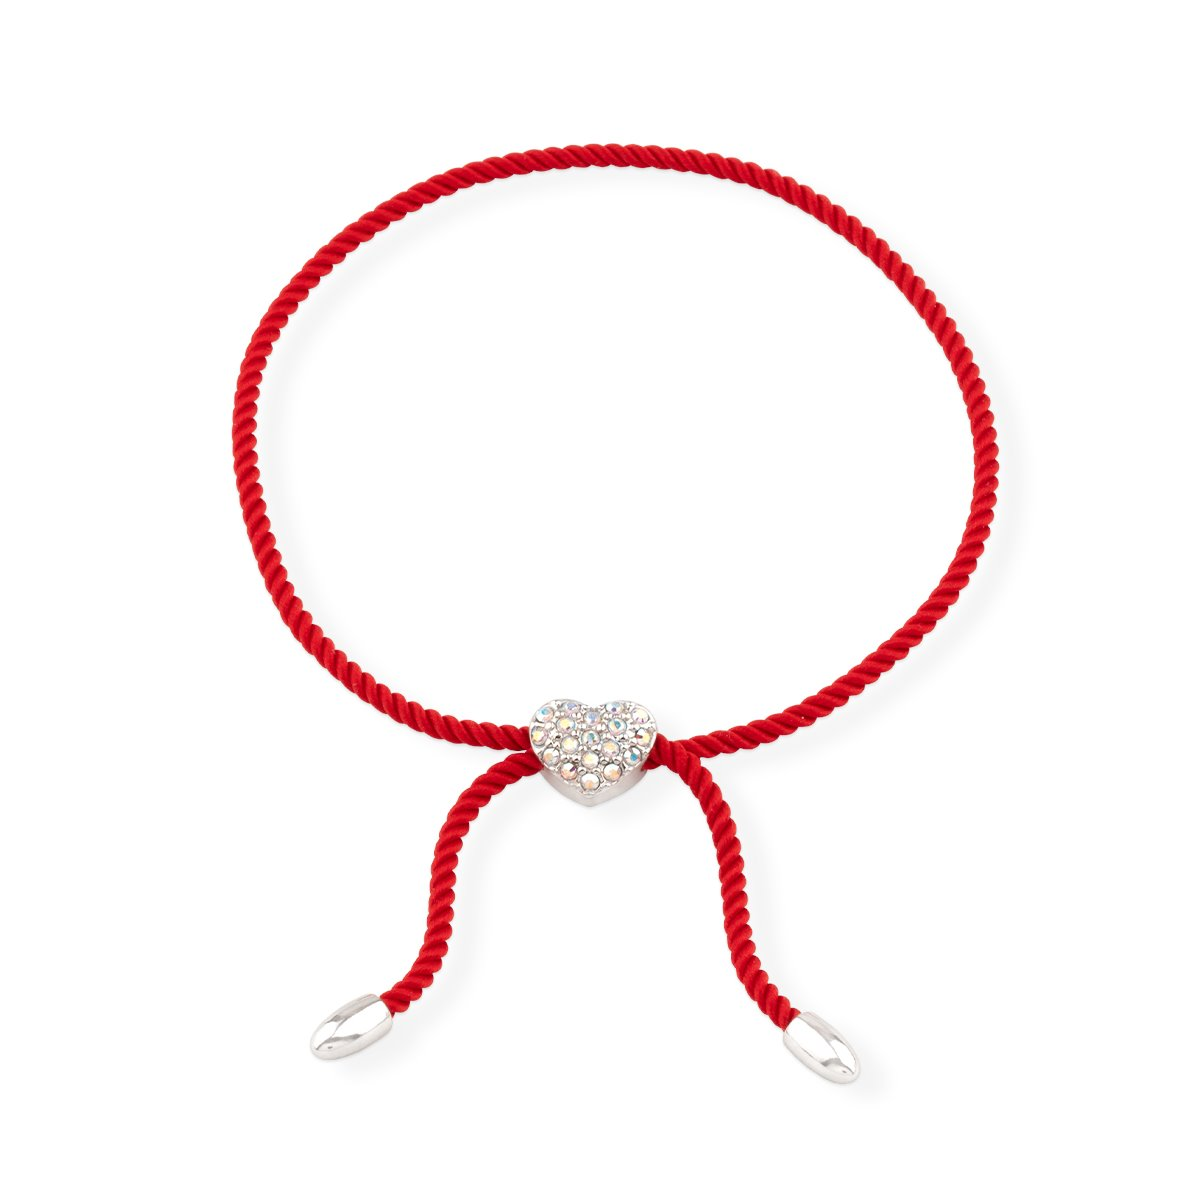 Wear Red Heart Bracelet